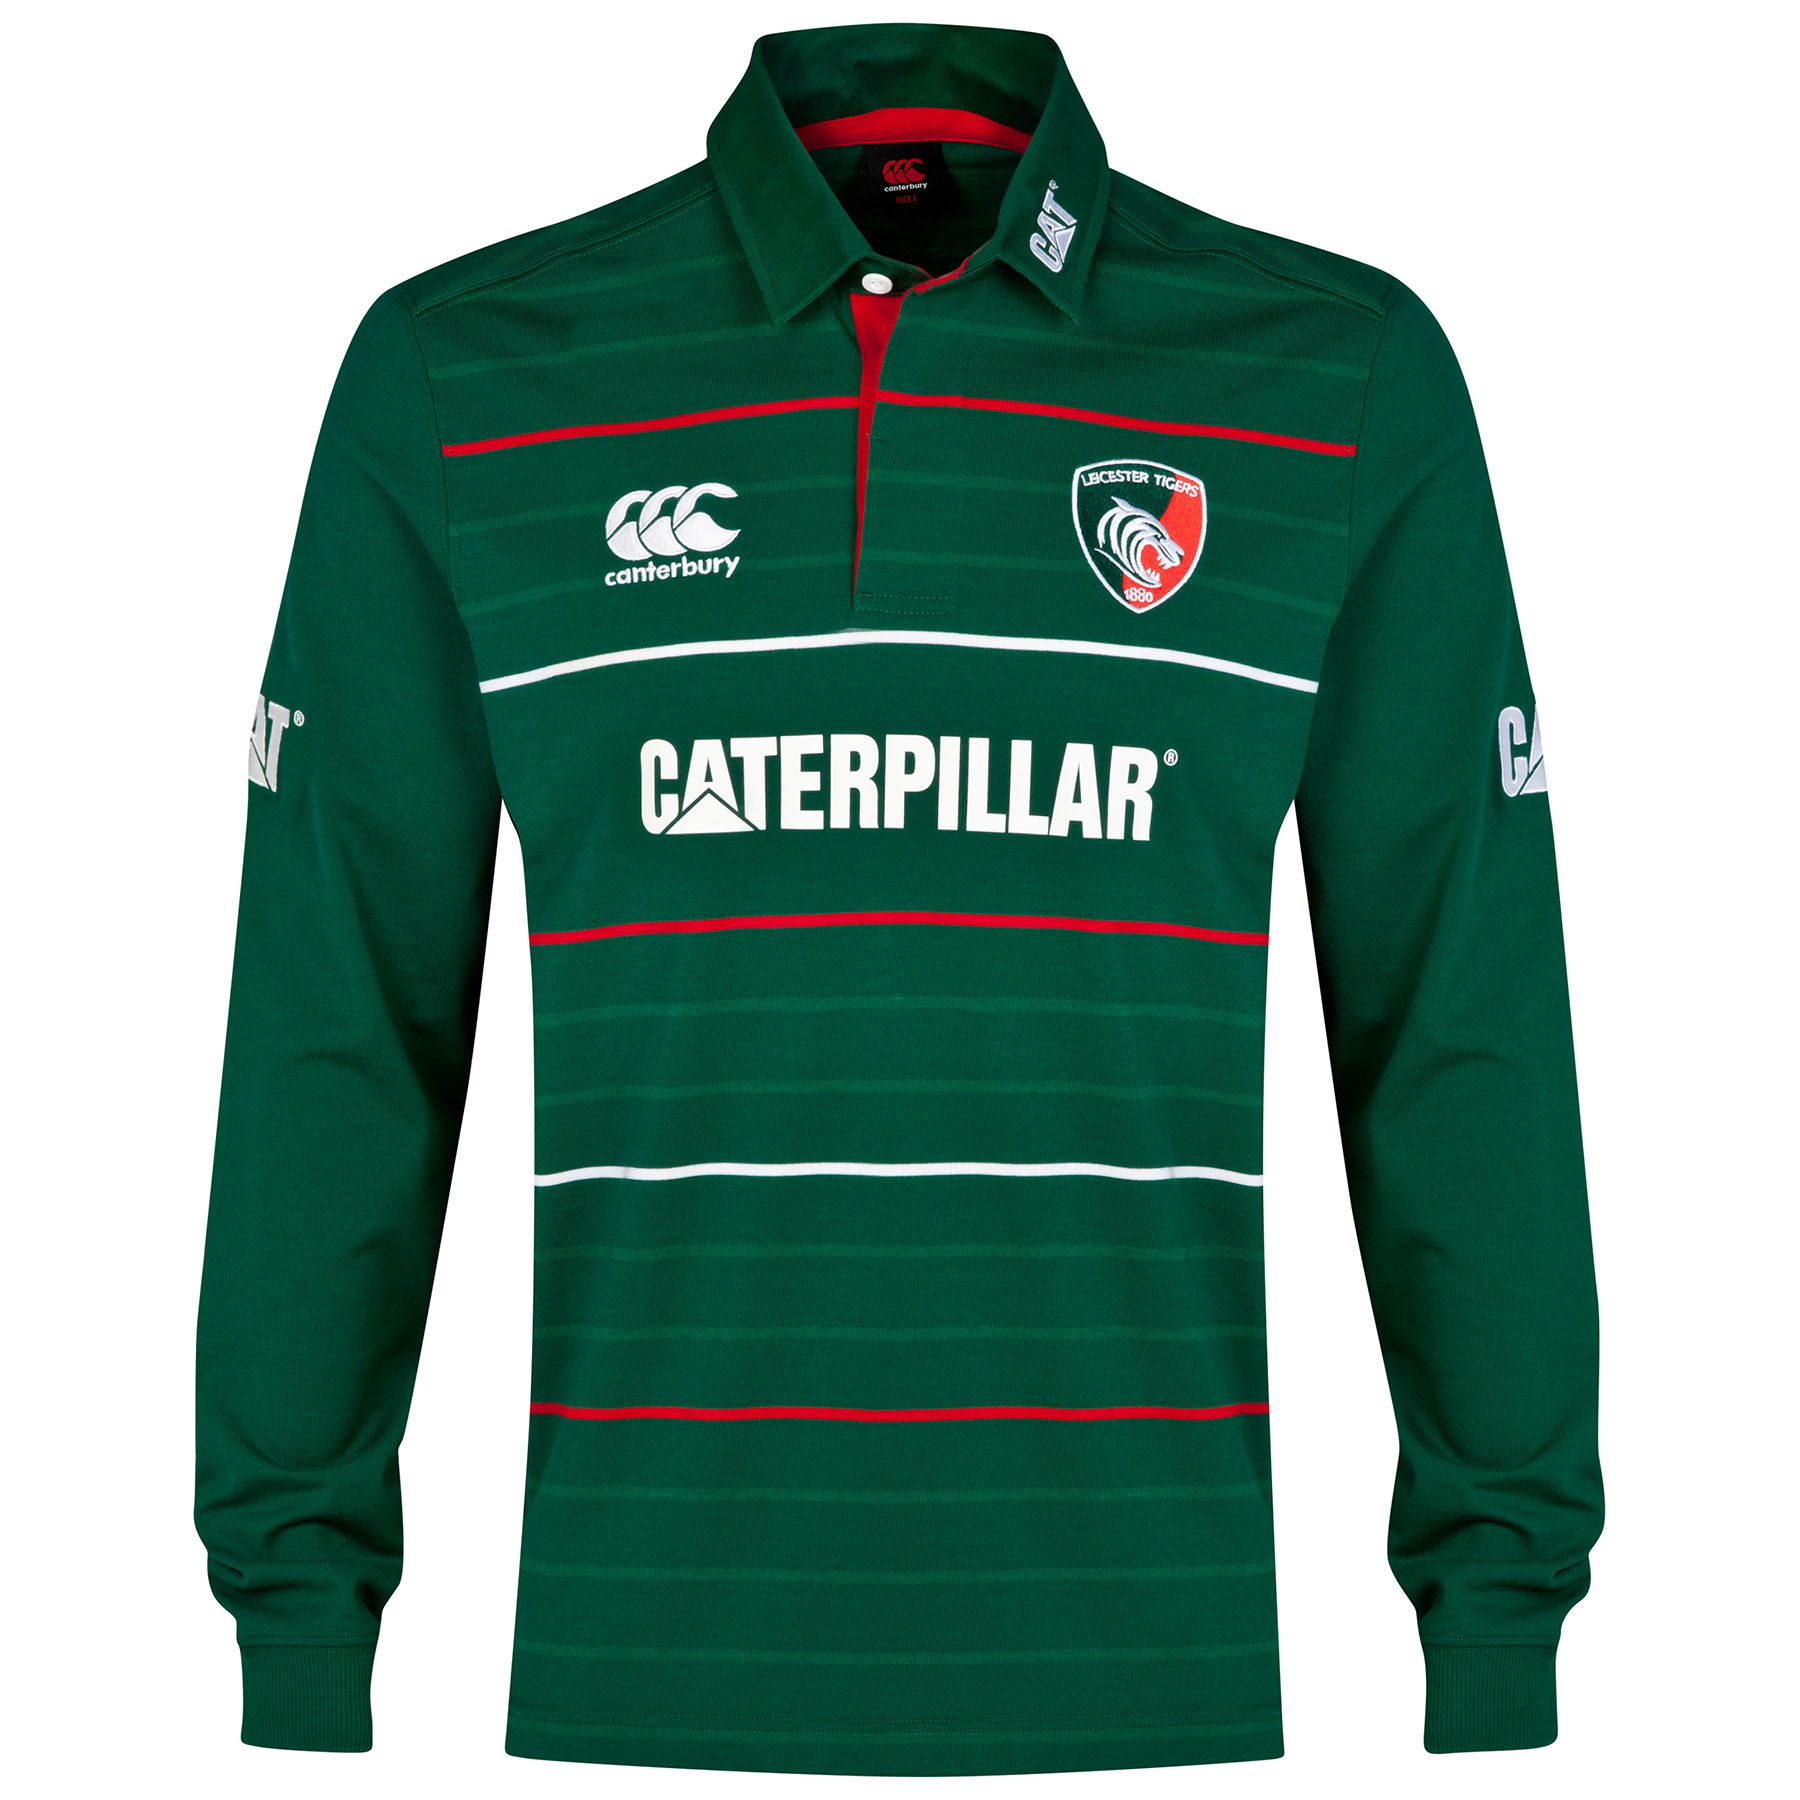 Leicester Tigers Home Classic Jersey 2014/15 LS